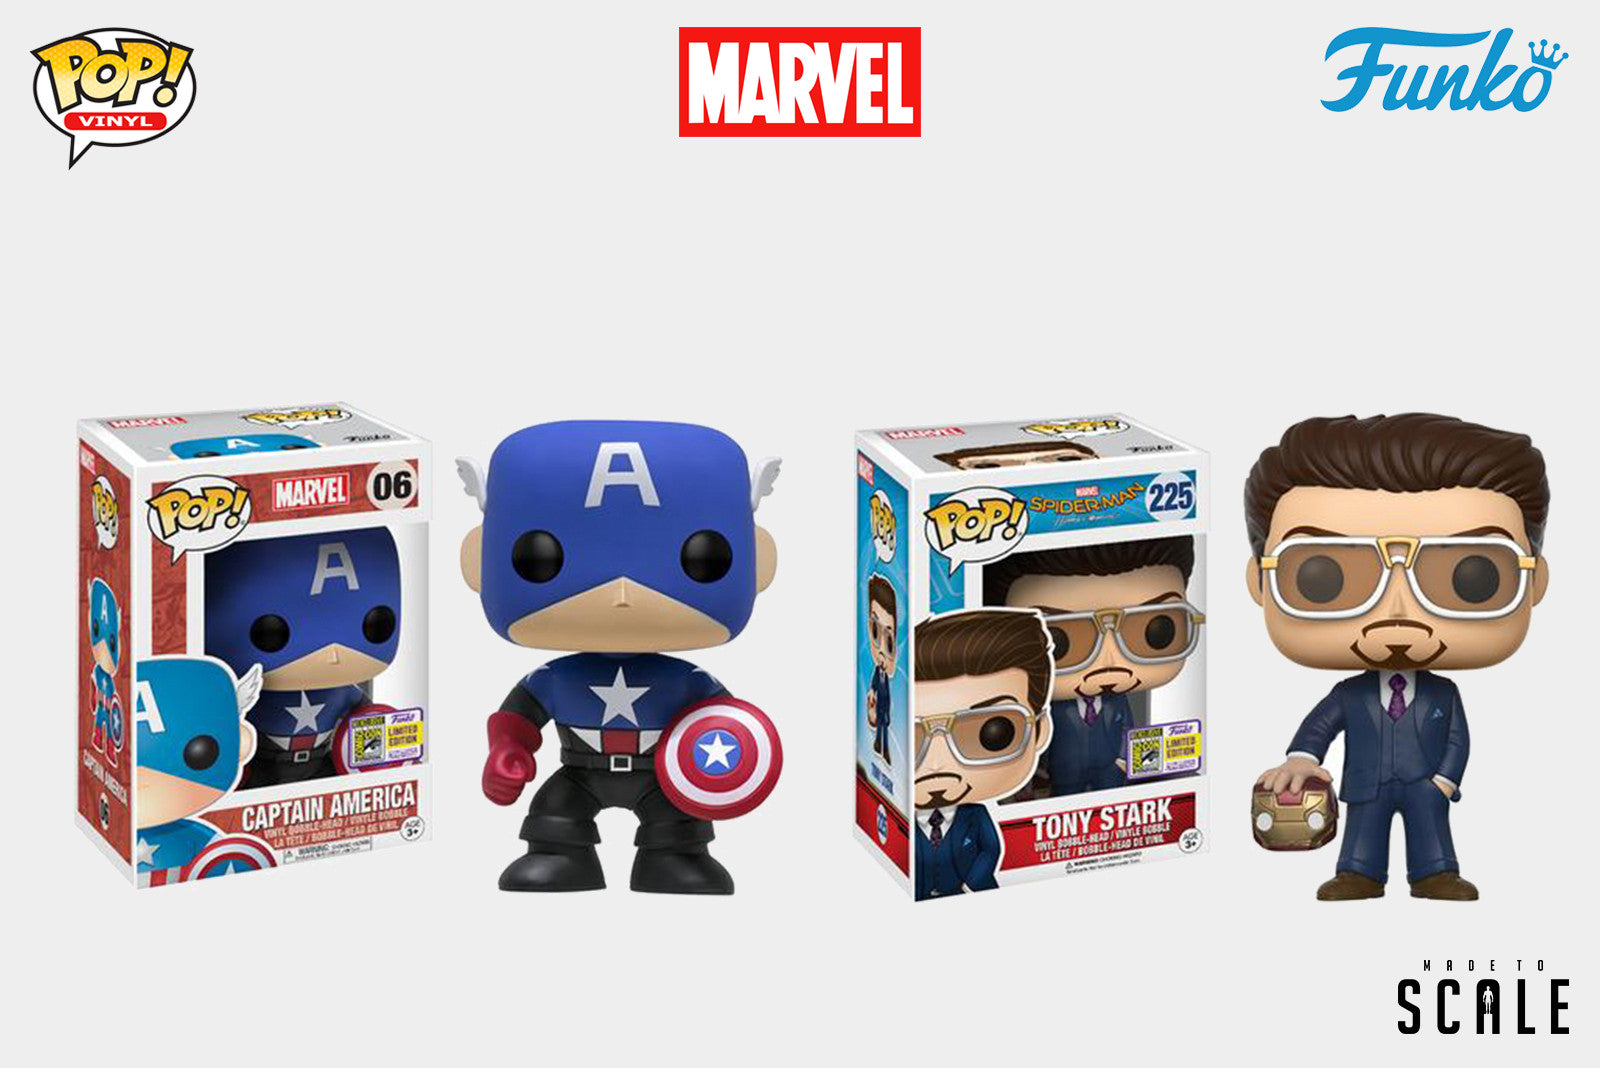 Funko SDCC 2017 Marvel Exclusive - Red She-Hulk, Bucky Cap, Homecoming Tony Stark With Iron Man Helmet, Selfie Gwenpool Pop Vinyl Figure